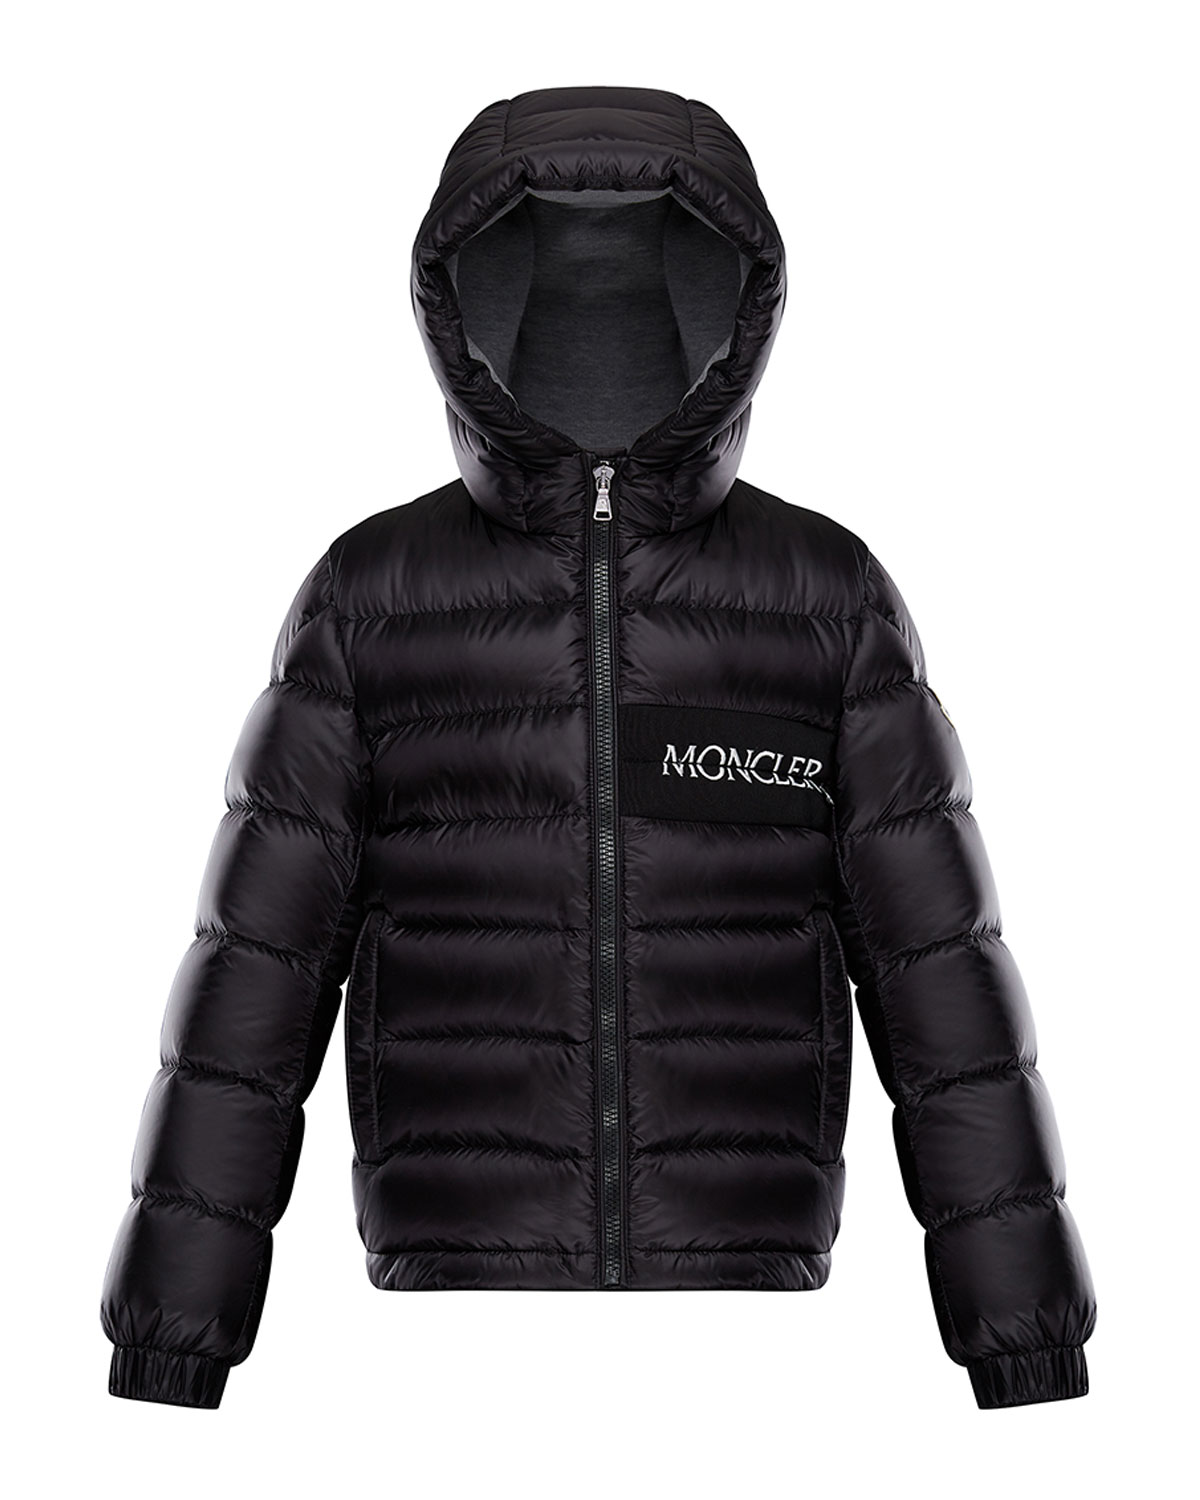 9a1e14a4d Aiton Hooded Quilted Jacket, Size 4-6